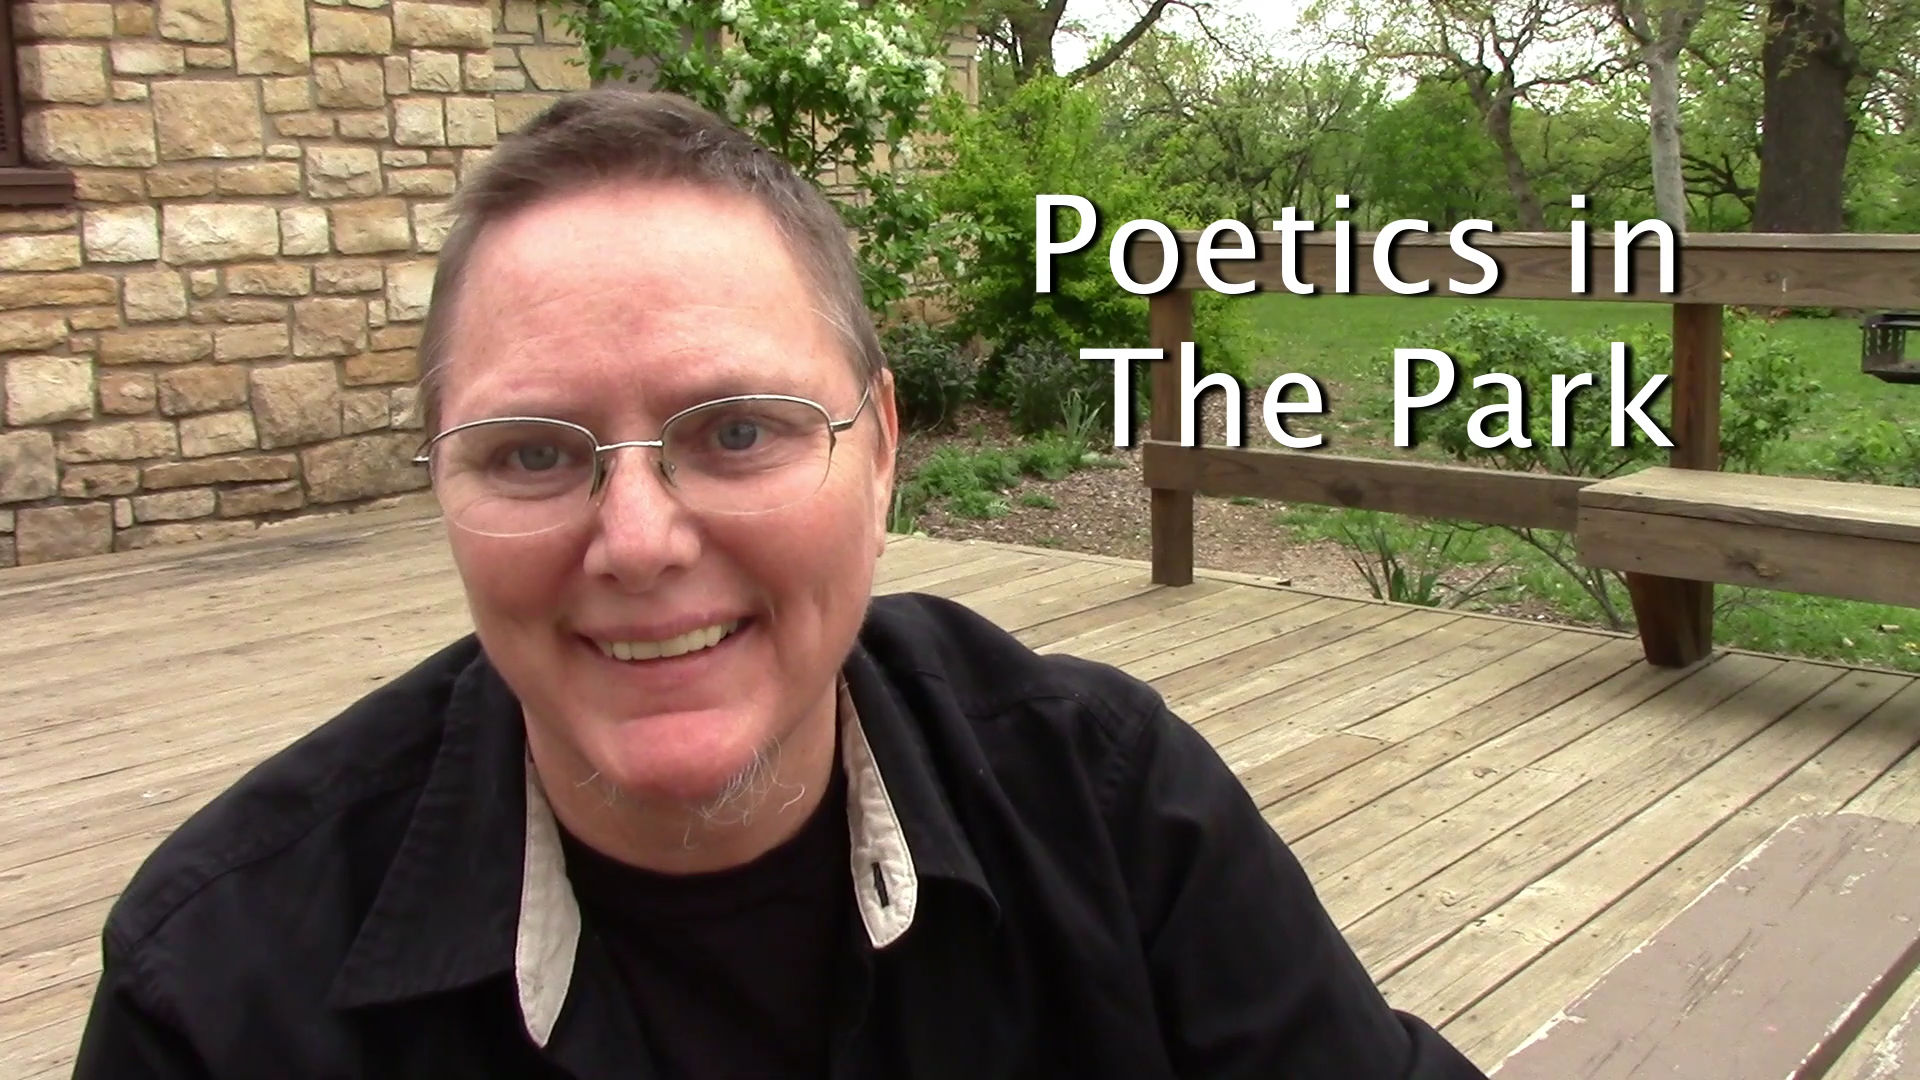 Poetics in the Park